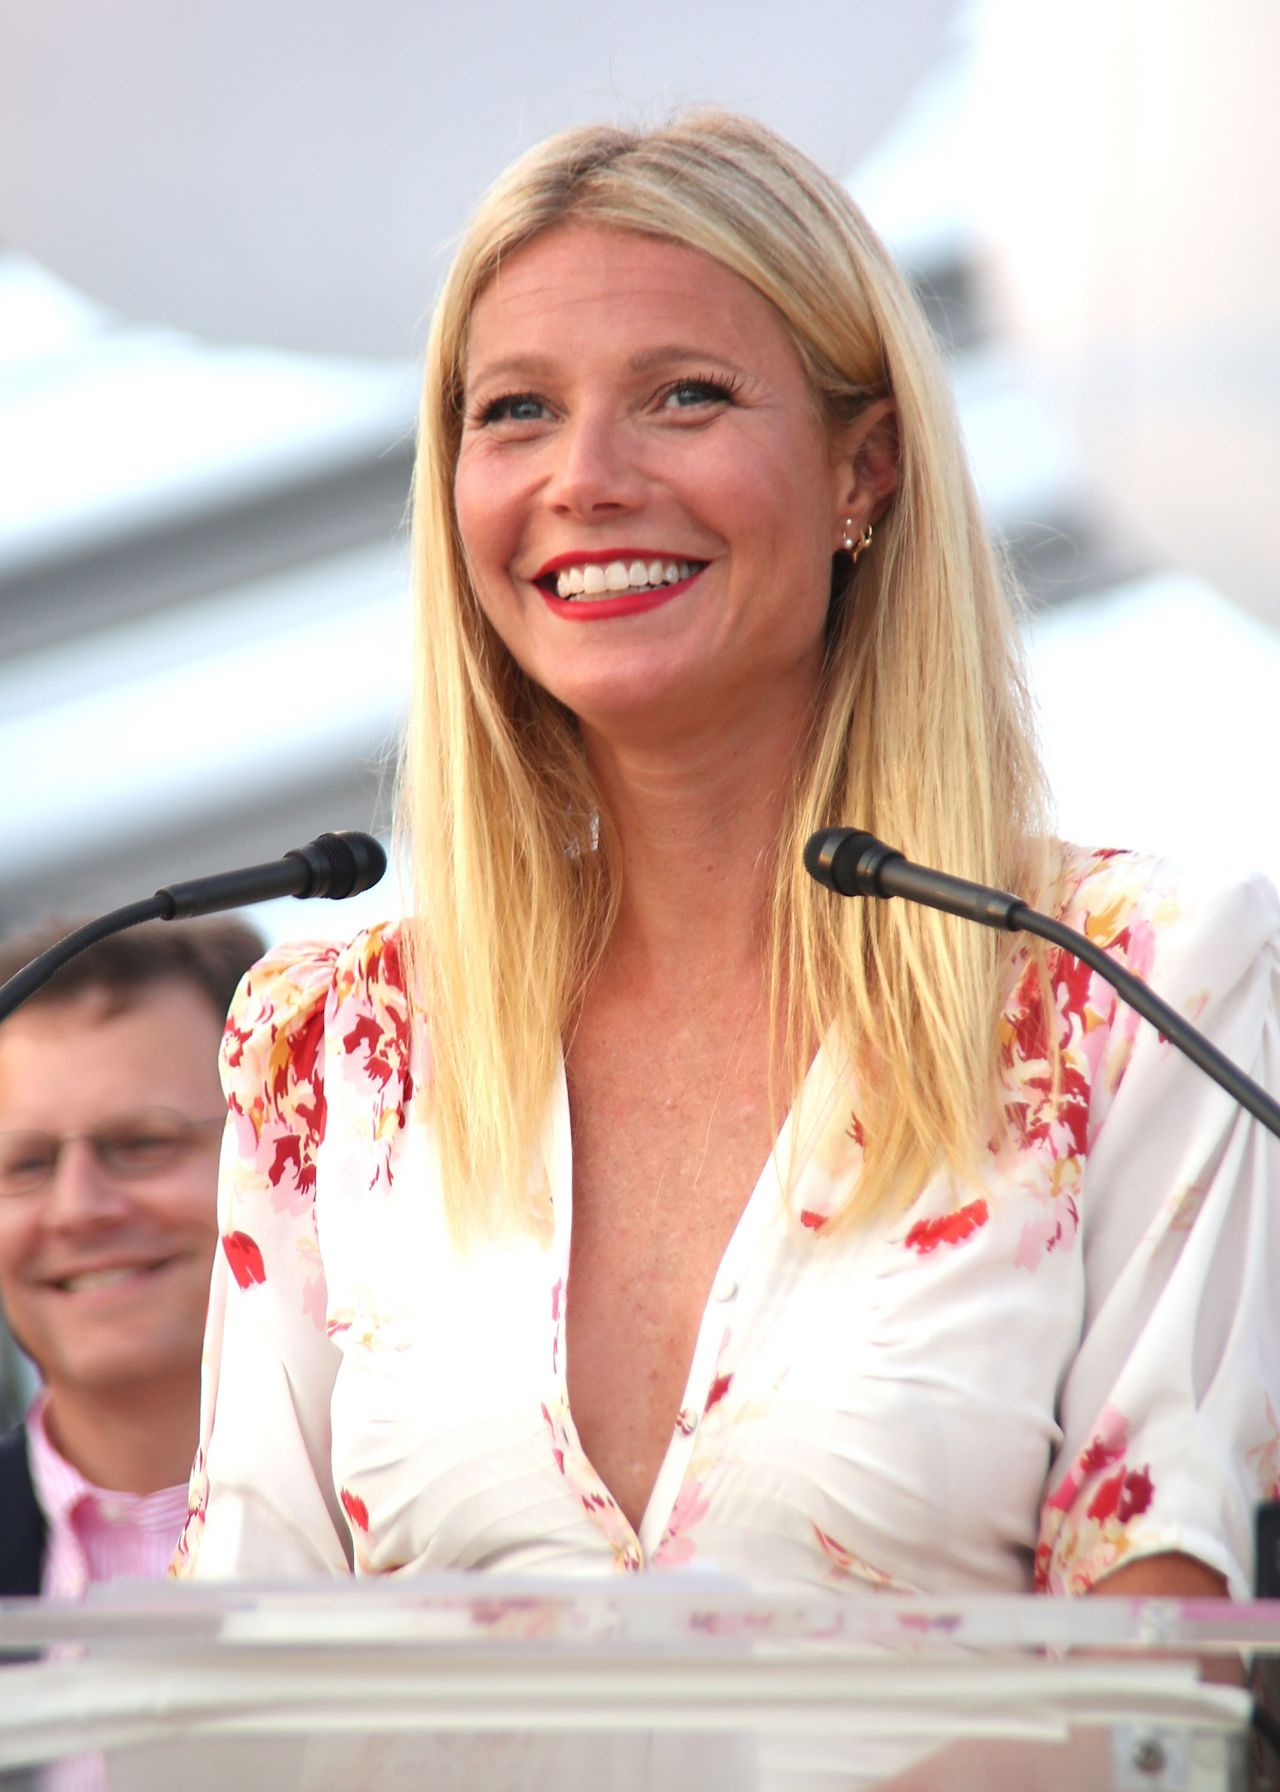 Gwyneth Paltrow Summer Style  PinkSunset Cocktail Party